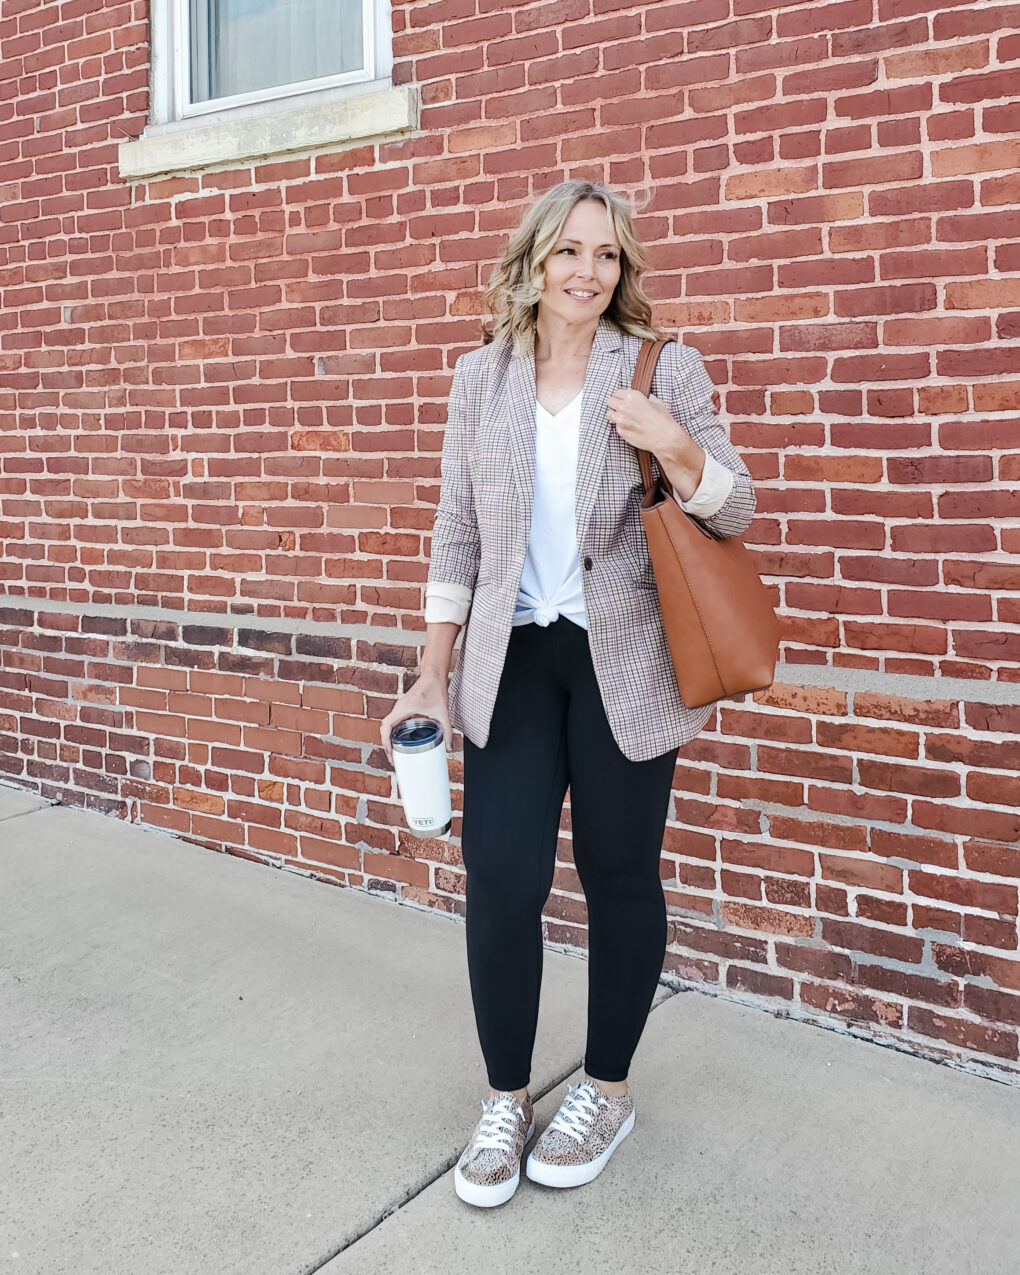 Teacher outfit with plaid blazer, white tee, black leggings, leopard print shoes, and a tan tote bag